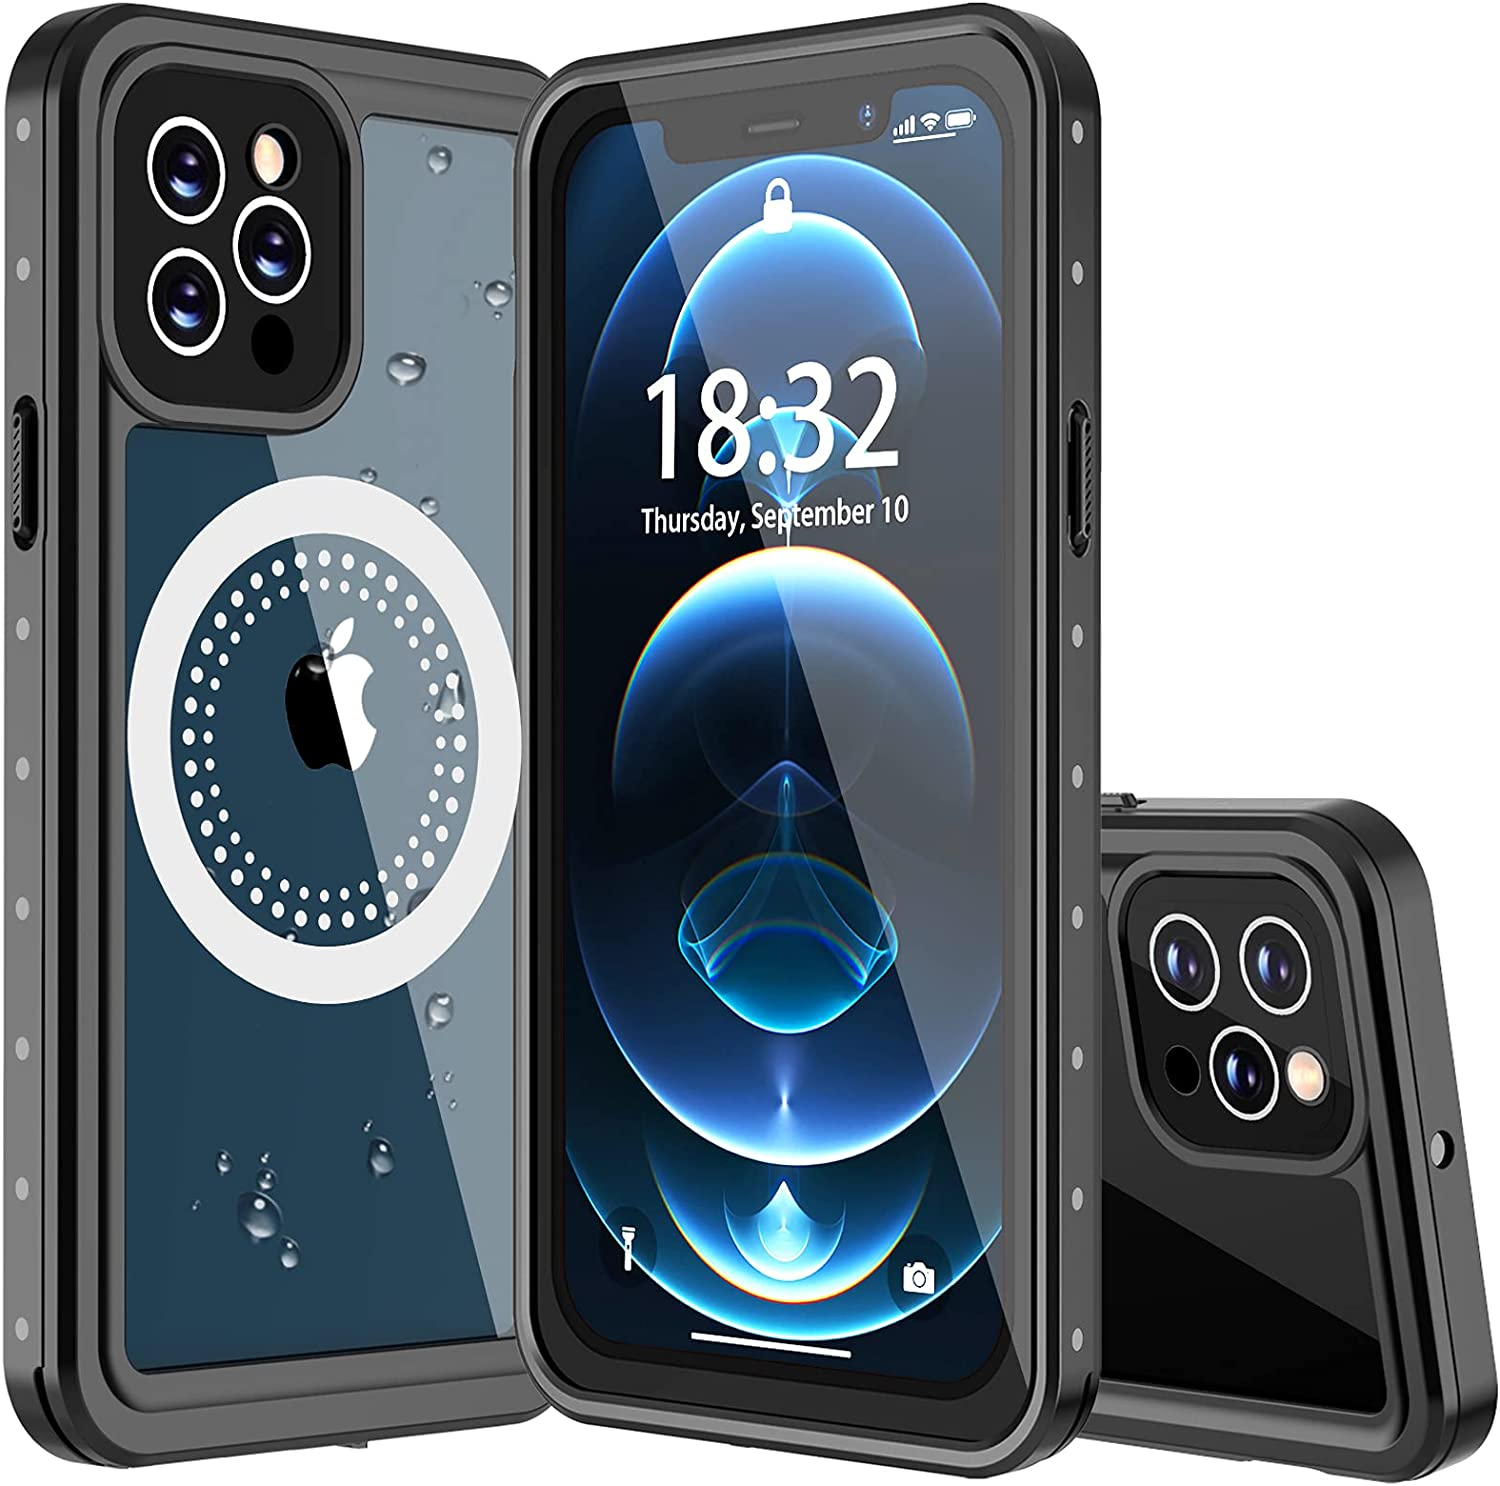 Nineasy for iPhone 12 Pro Max Case Waterproof, Built in Magnets with Screen Protector Heavy Duty Shockproof IP68 Waterproof Case for iPhone 12 Pro Max 6.7inch (Compatible with All MagSafe Accessories)